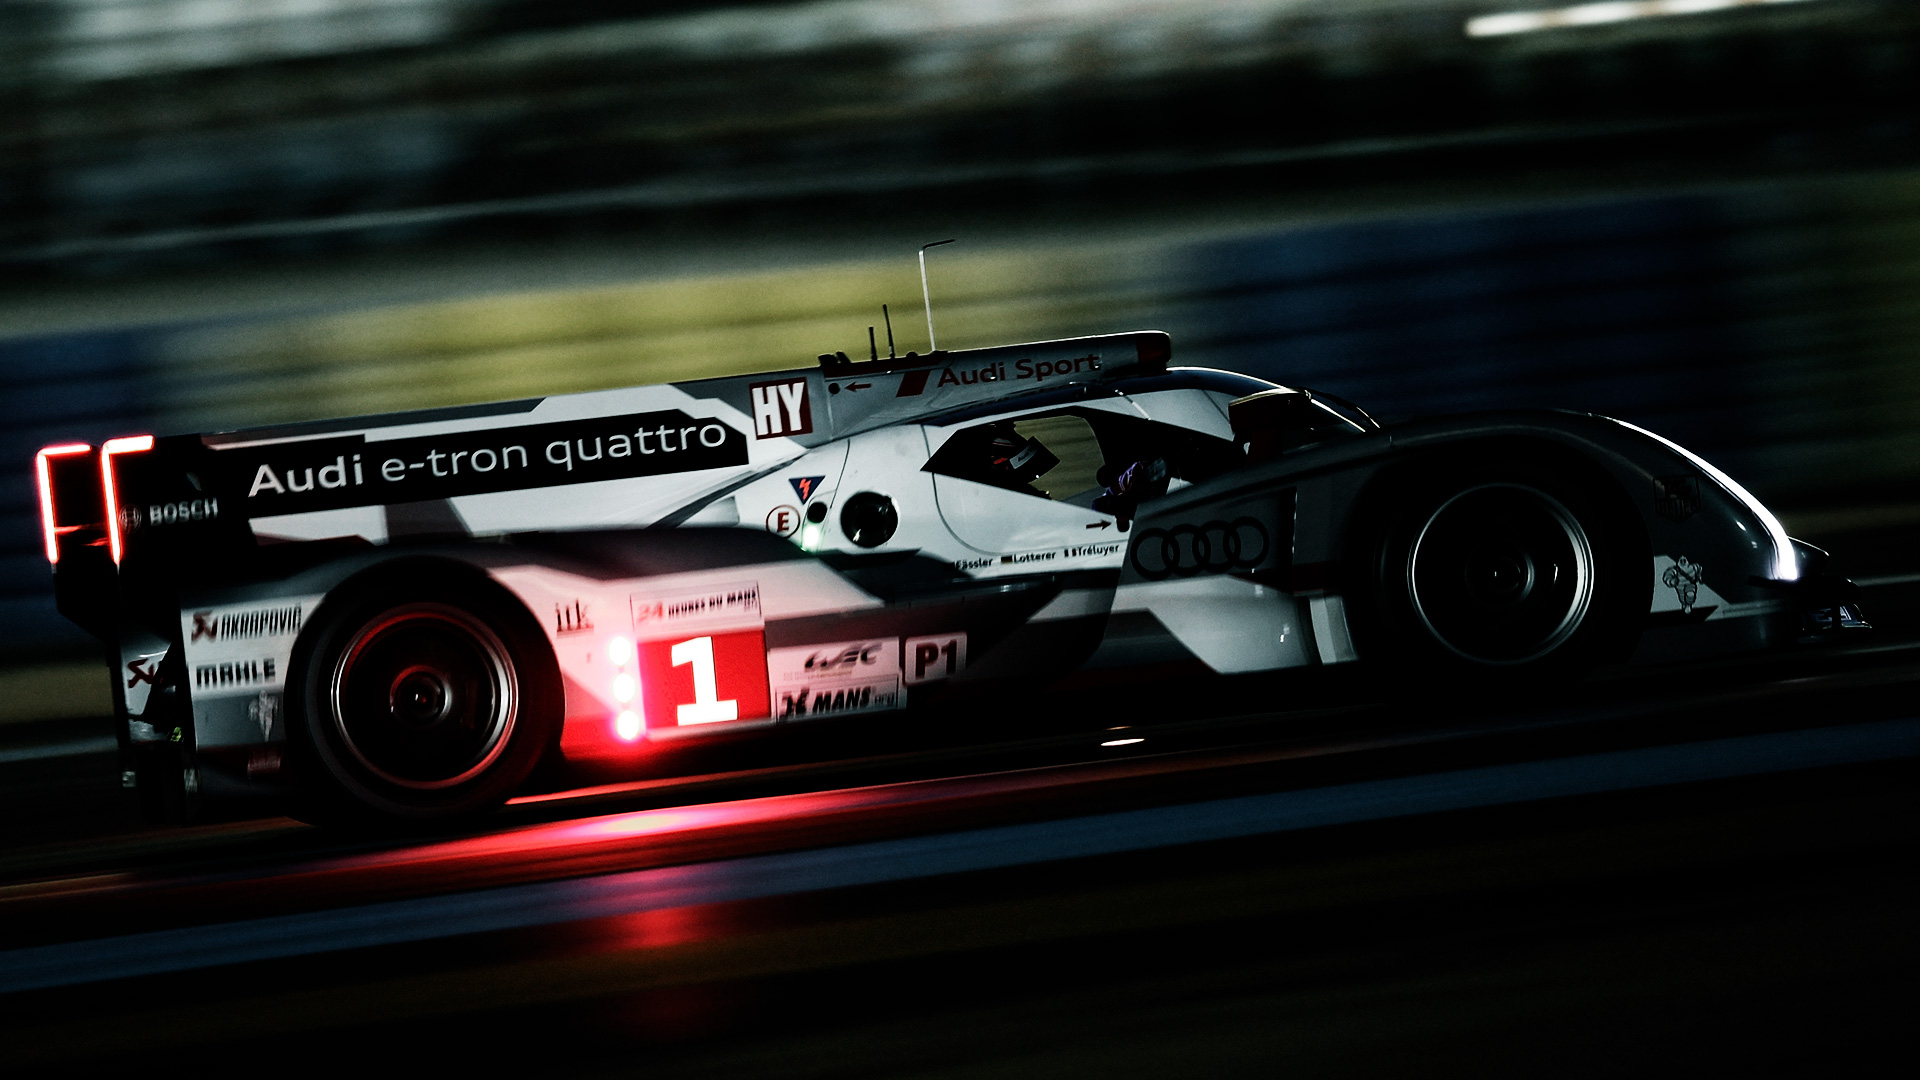 Audi R18 e-tron quattro on the racetrack